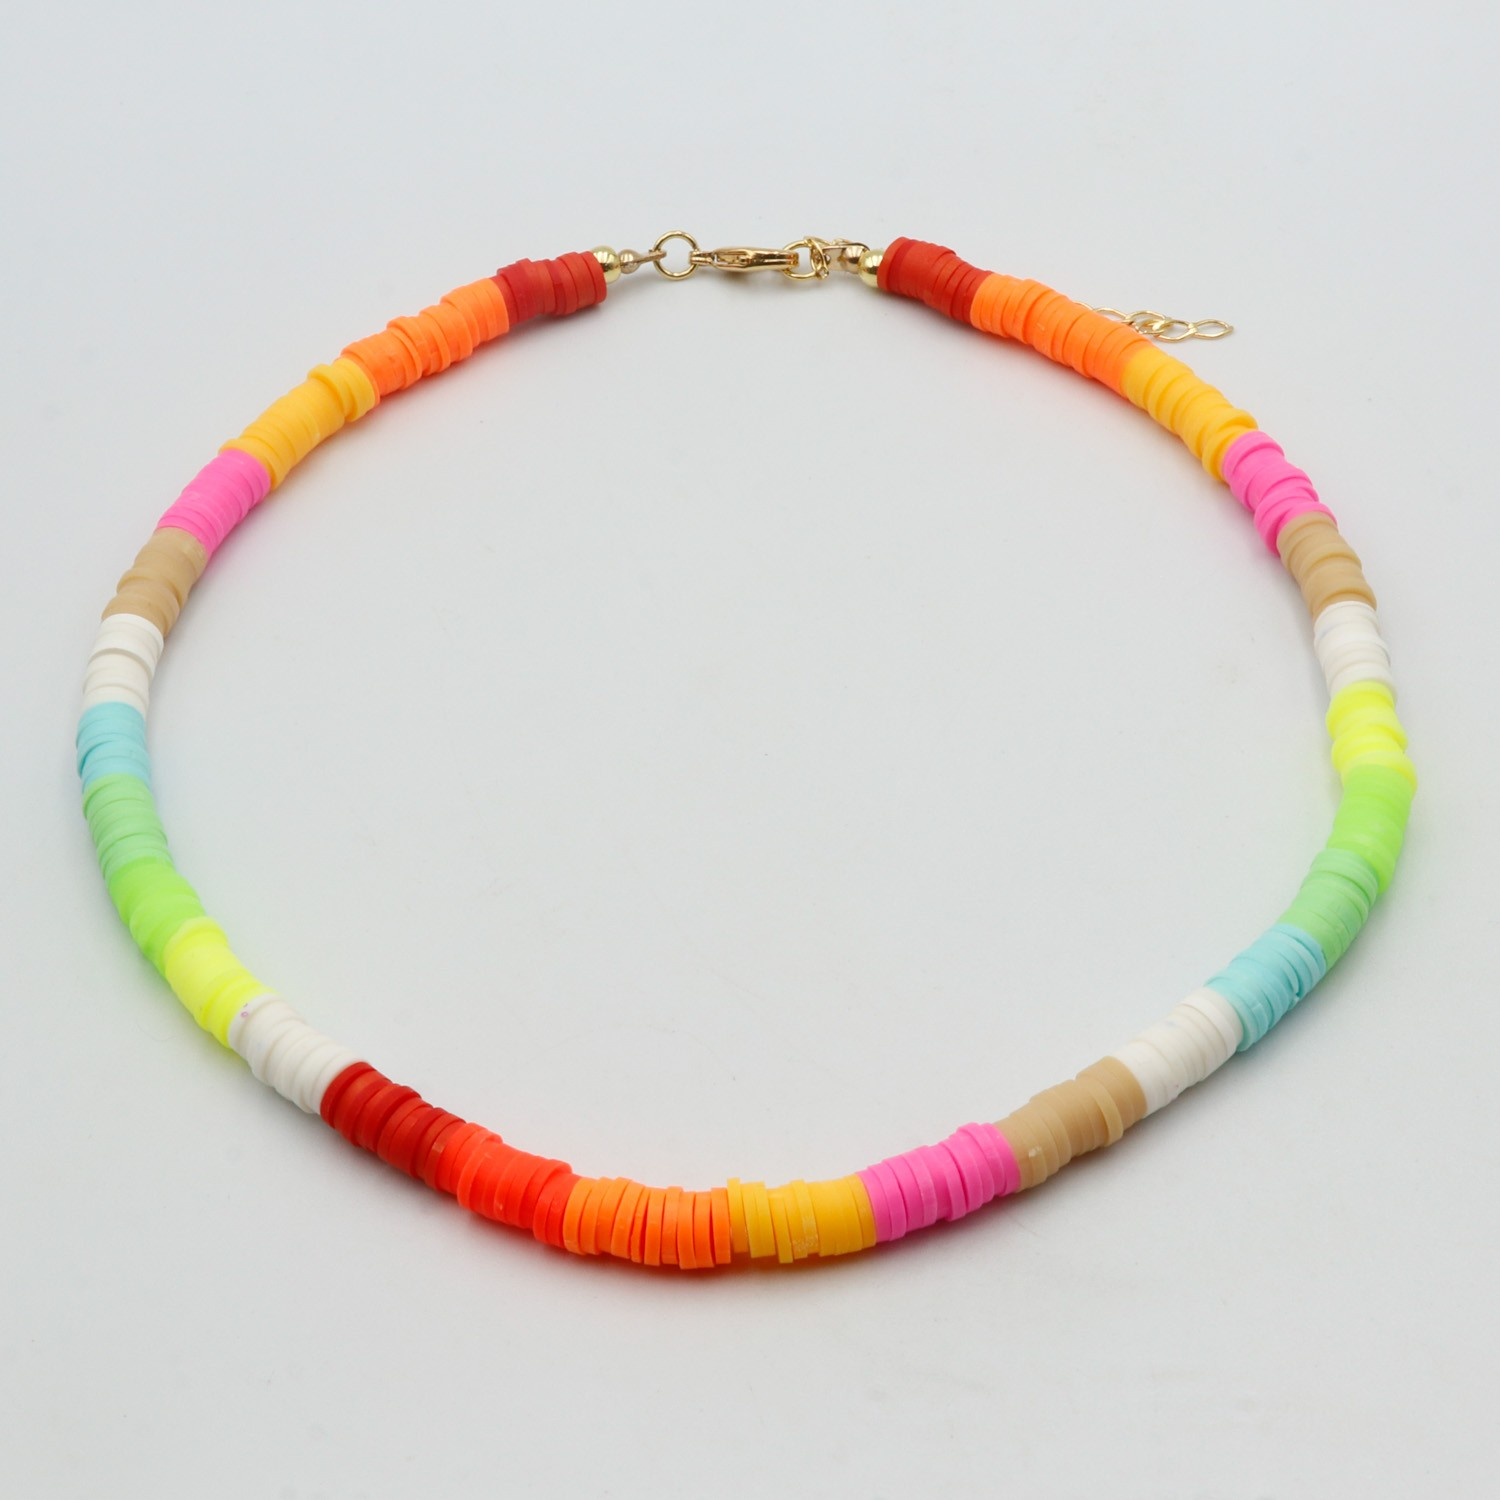 GARGANTILHA BEADS MULTICOLOR